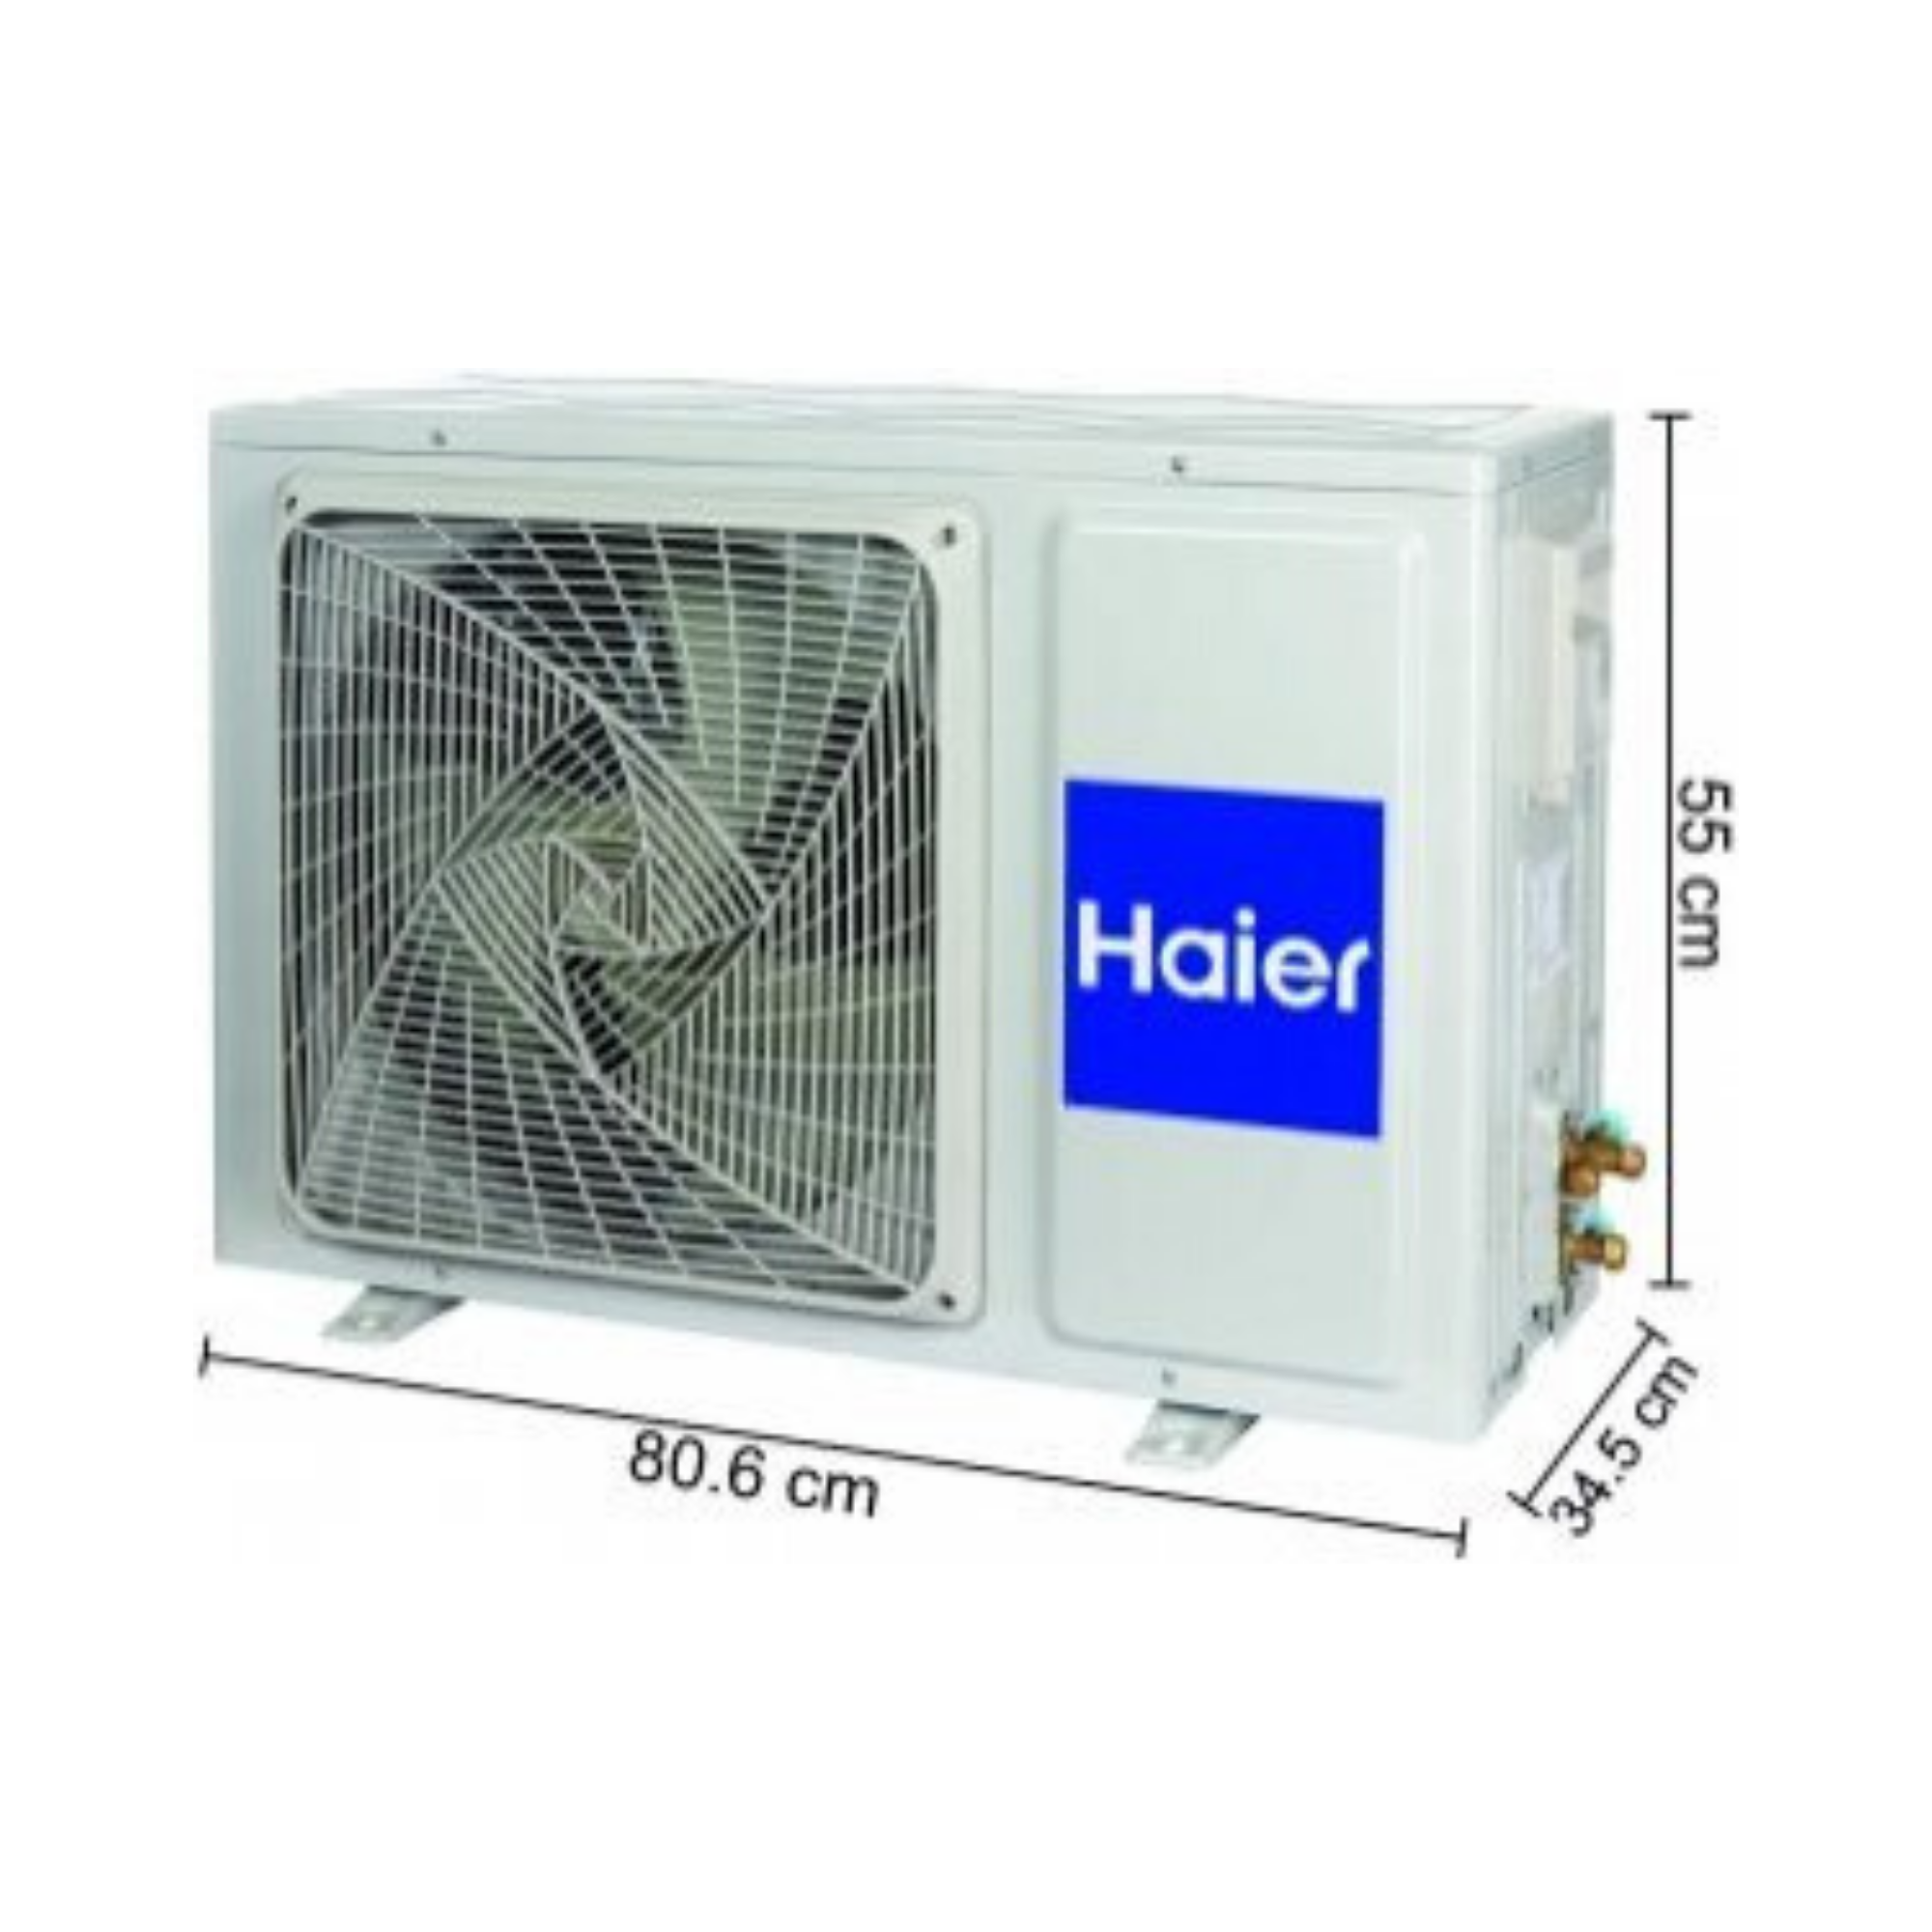 Haier 1.5 Ton 3 Star Split Air Conditioner